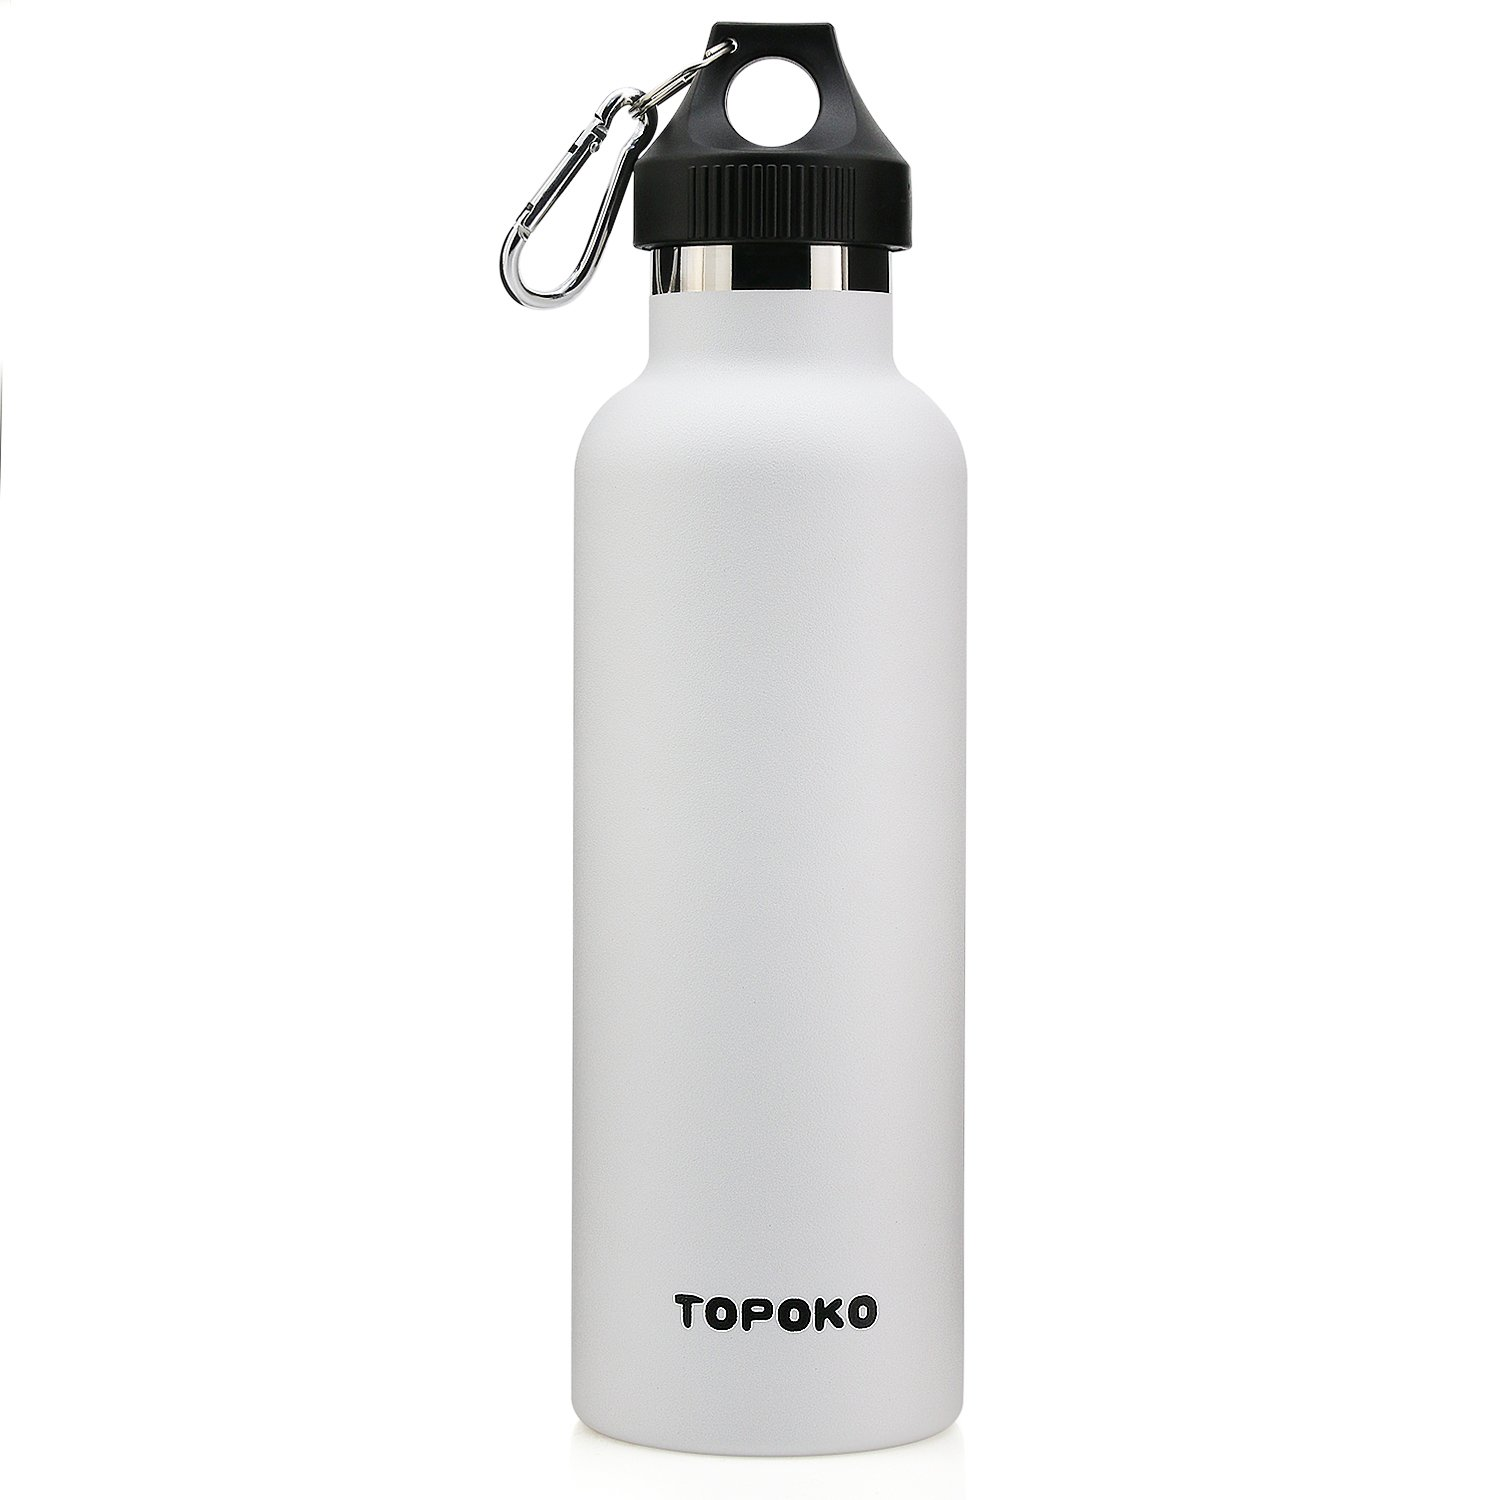 TOPOKO 25 oz Stainless Steel Vacuum Insulated Water Bottle, Keeps Drink Cold up to 24 Hours & Hot up to 12 Hours, Leak Proof and Sweat Proof. Large Capacity Sports Bottle (White) 141[並行輸入] B075D4YKS8